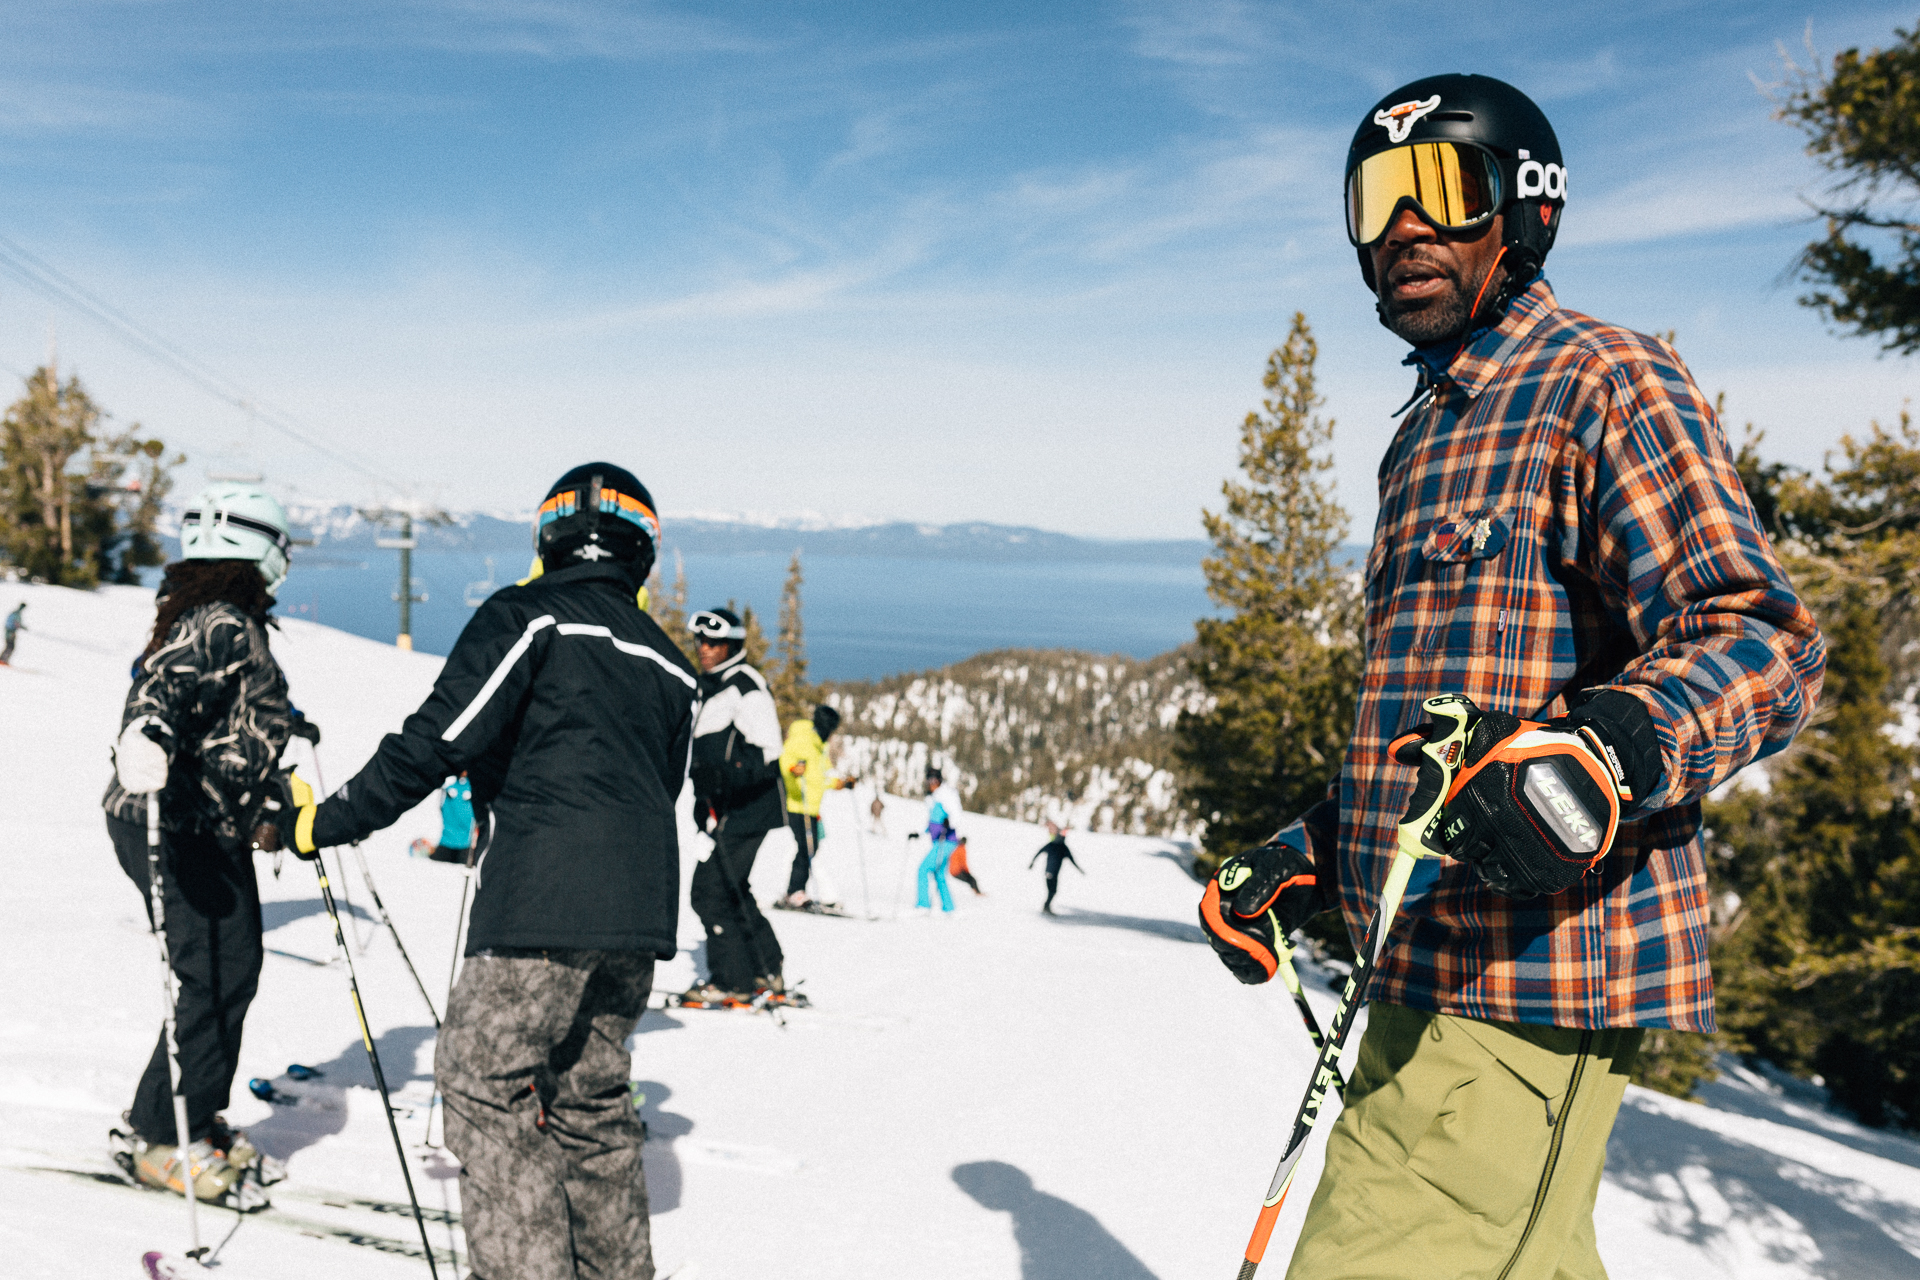 The National Brotherhood of Skiers is about family just as much as it is about the skiing.